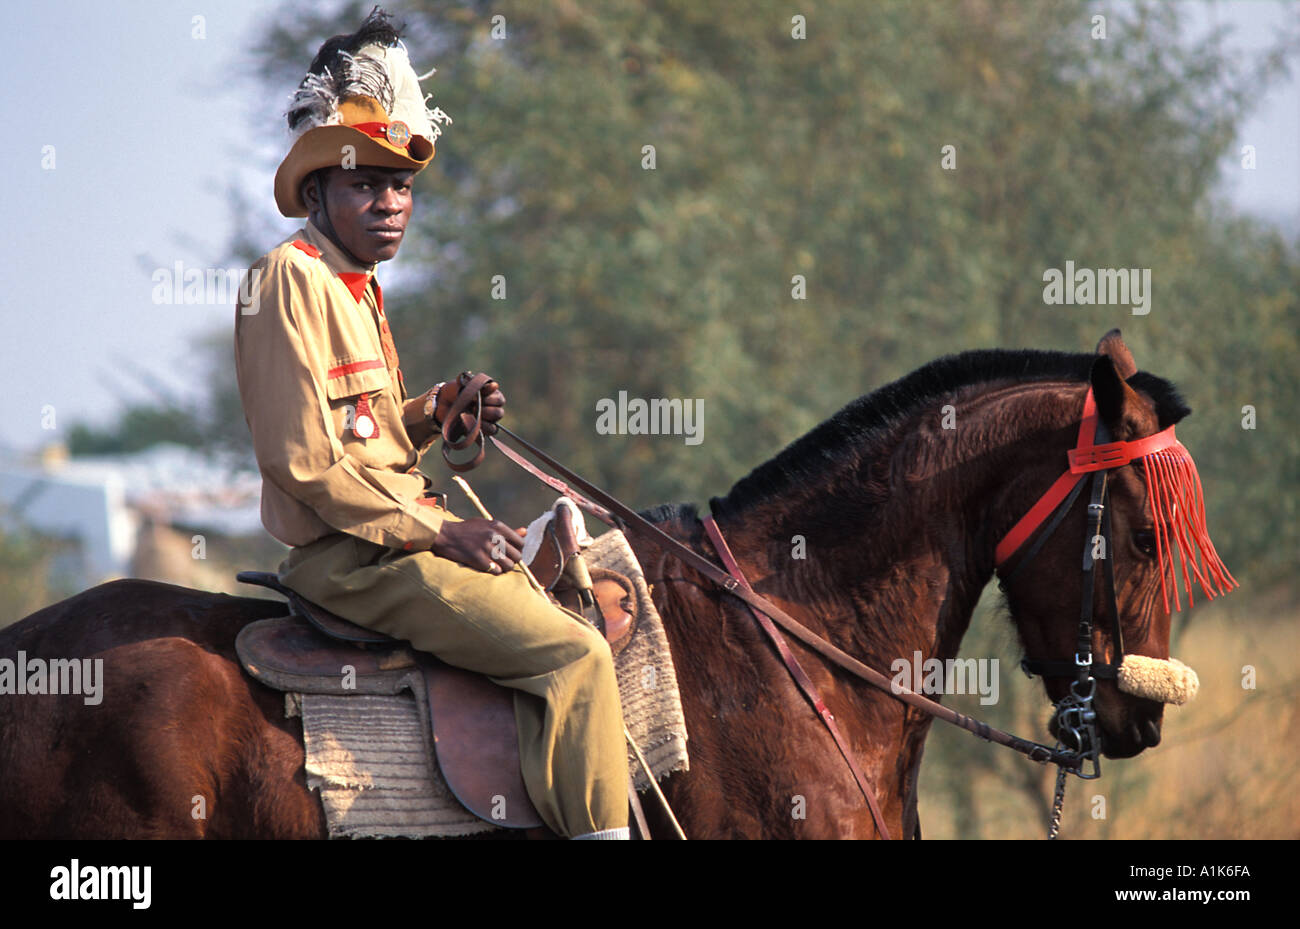 Member of paramilitary style group in uniform and on horseback for the main Herero festival Maherero day Okahandja Namibia - Stock Image